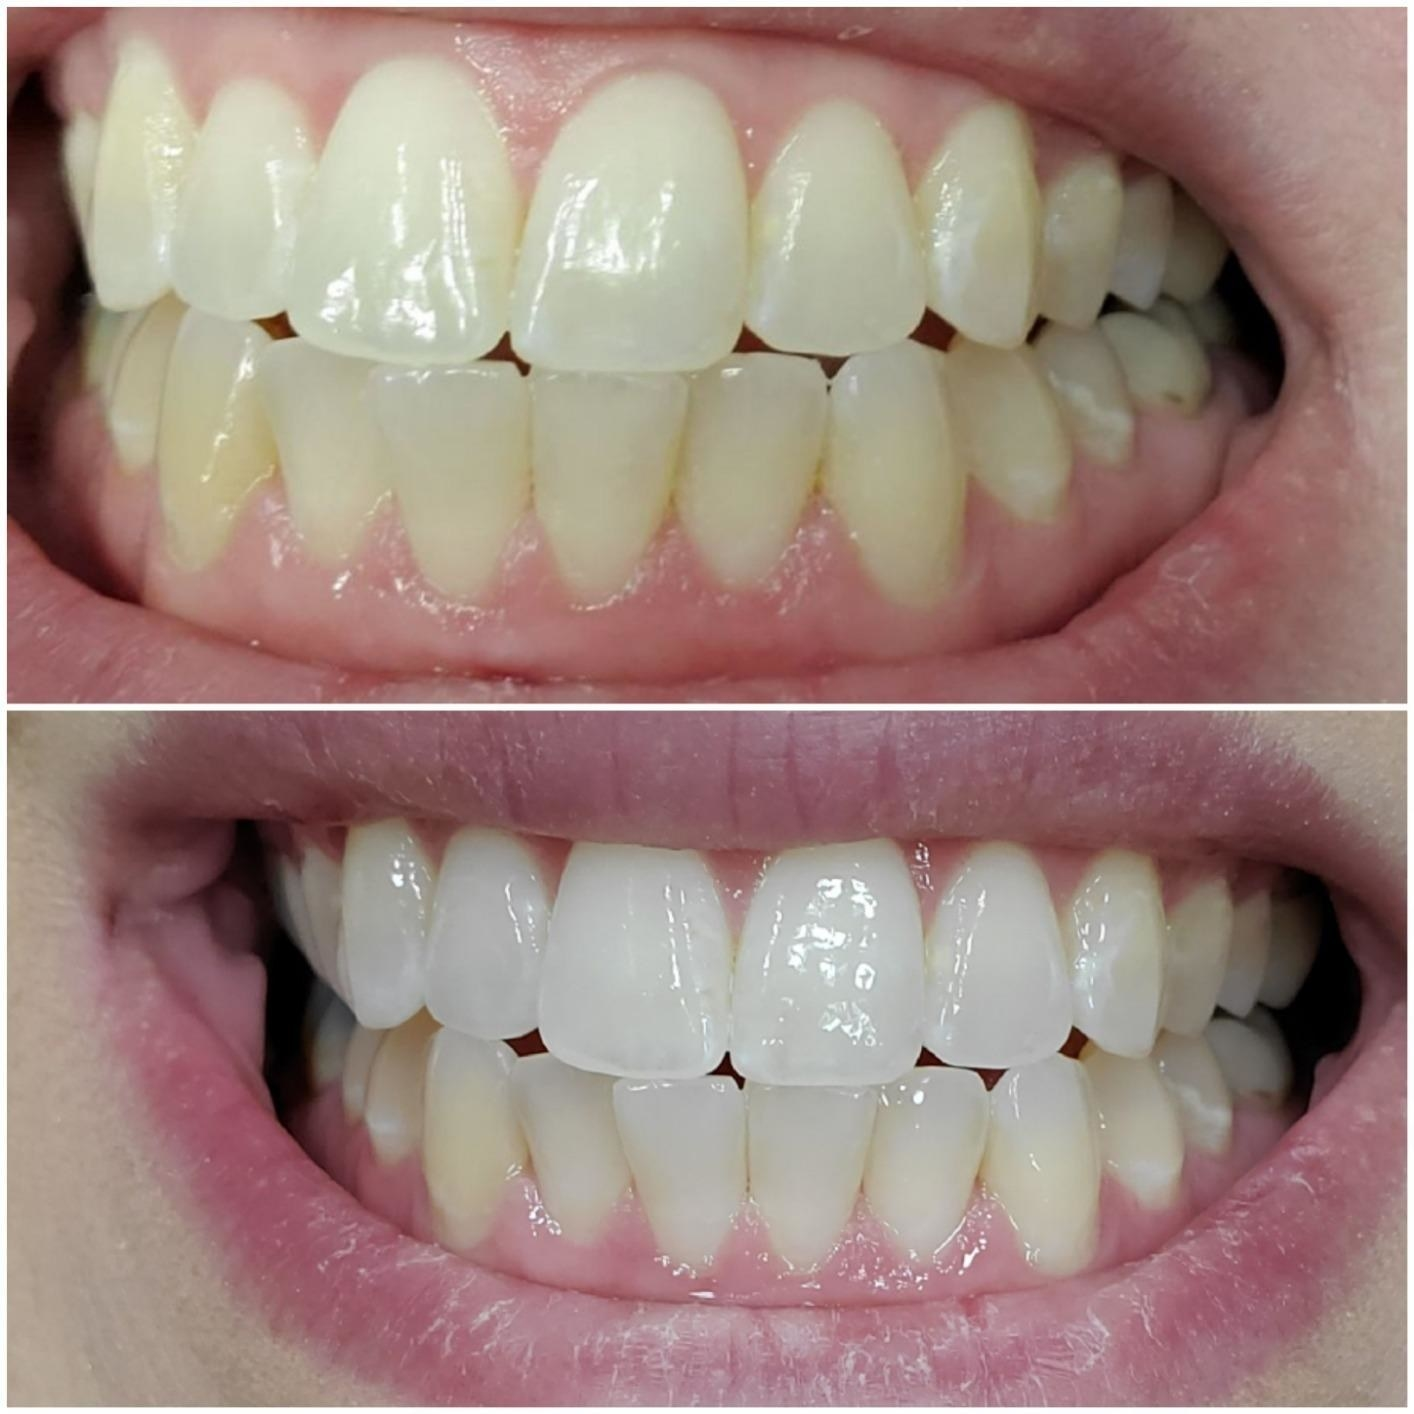 A reviewer's teeth in a before/after: yellower on top and whiter on the bottom